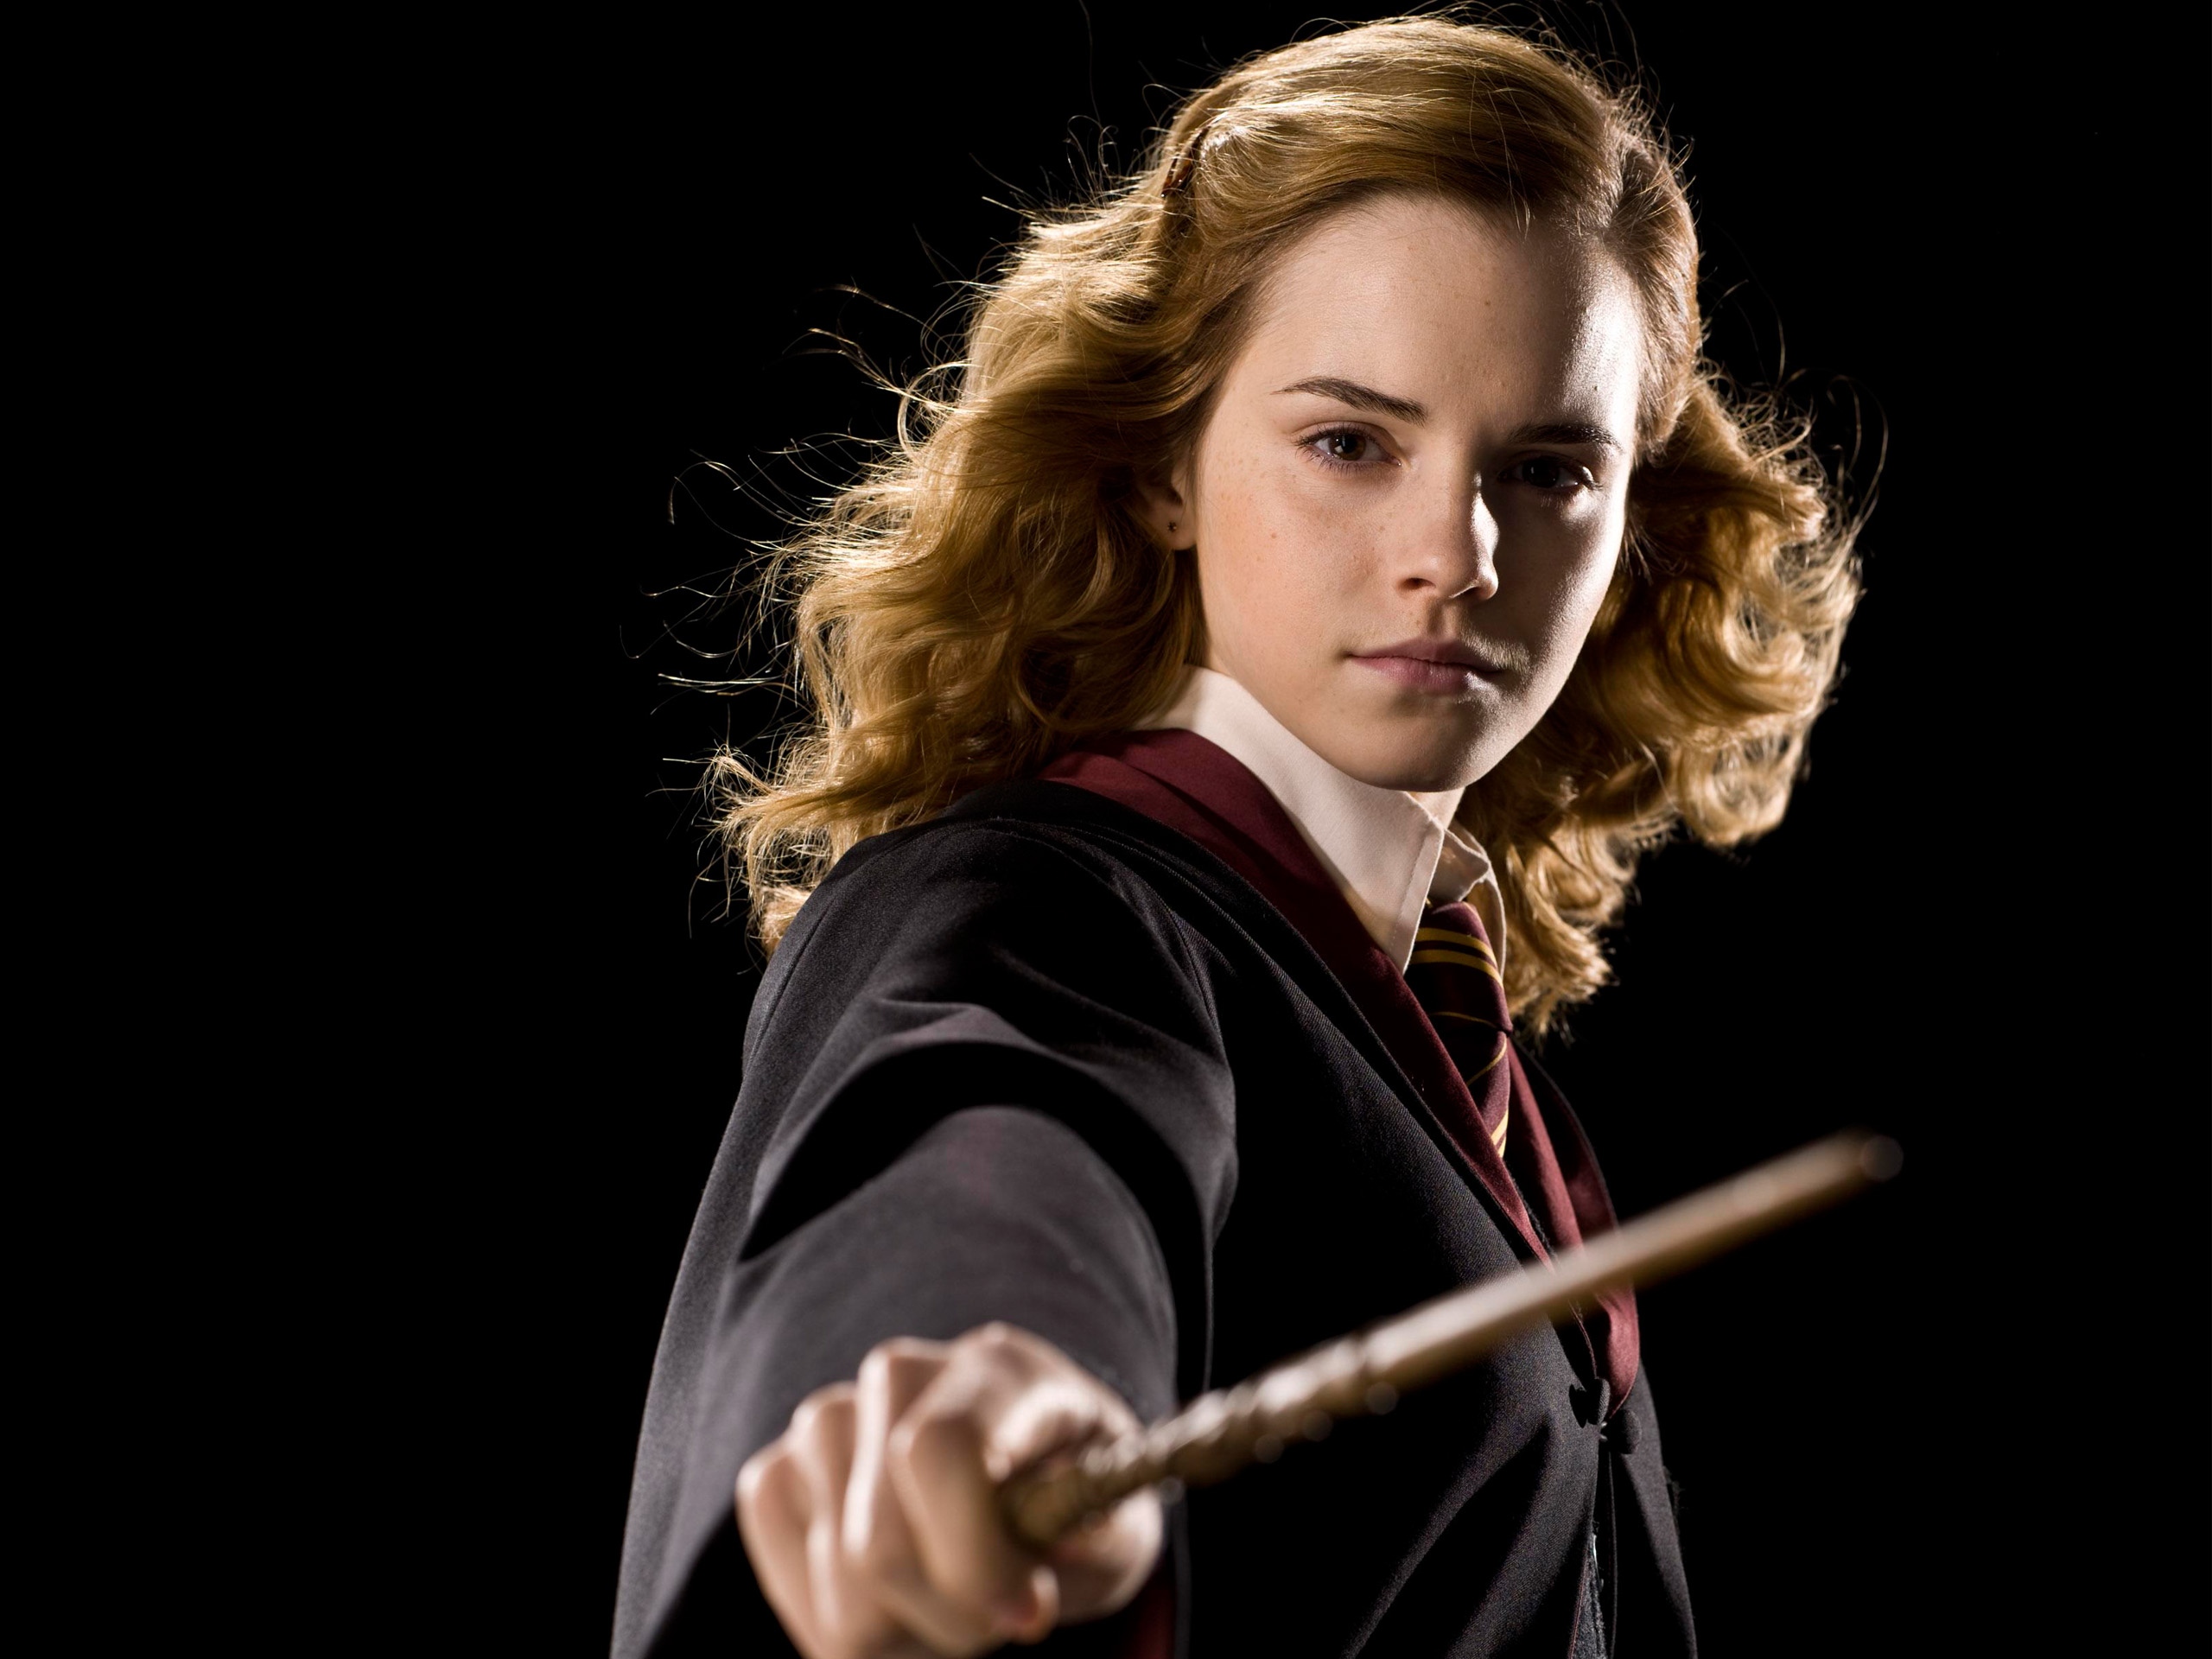 Emma Watson in Harry Potter (4) 726.65 Kb